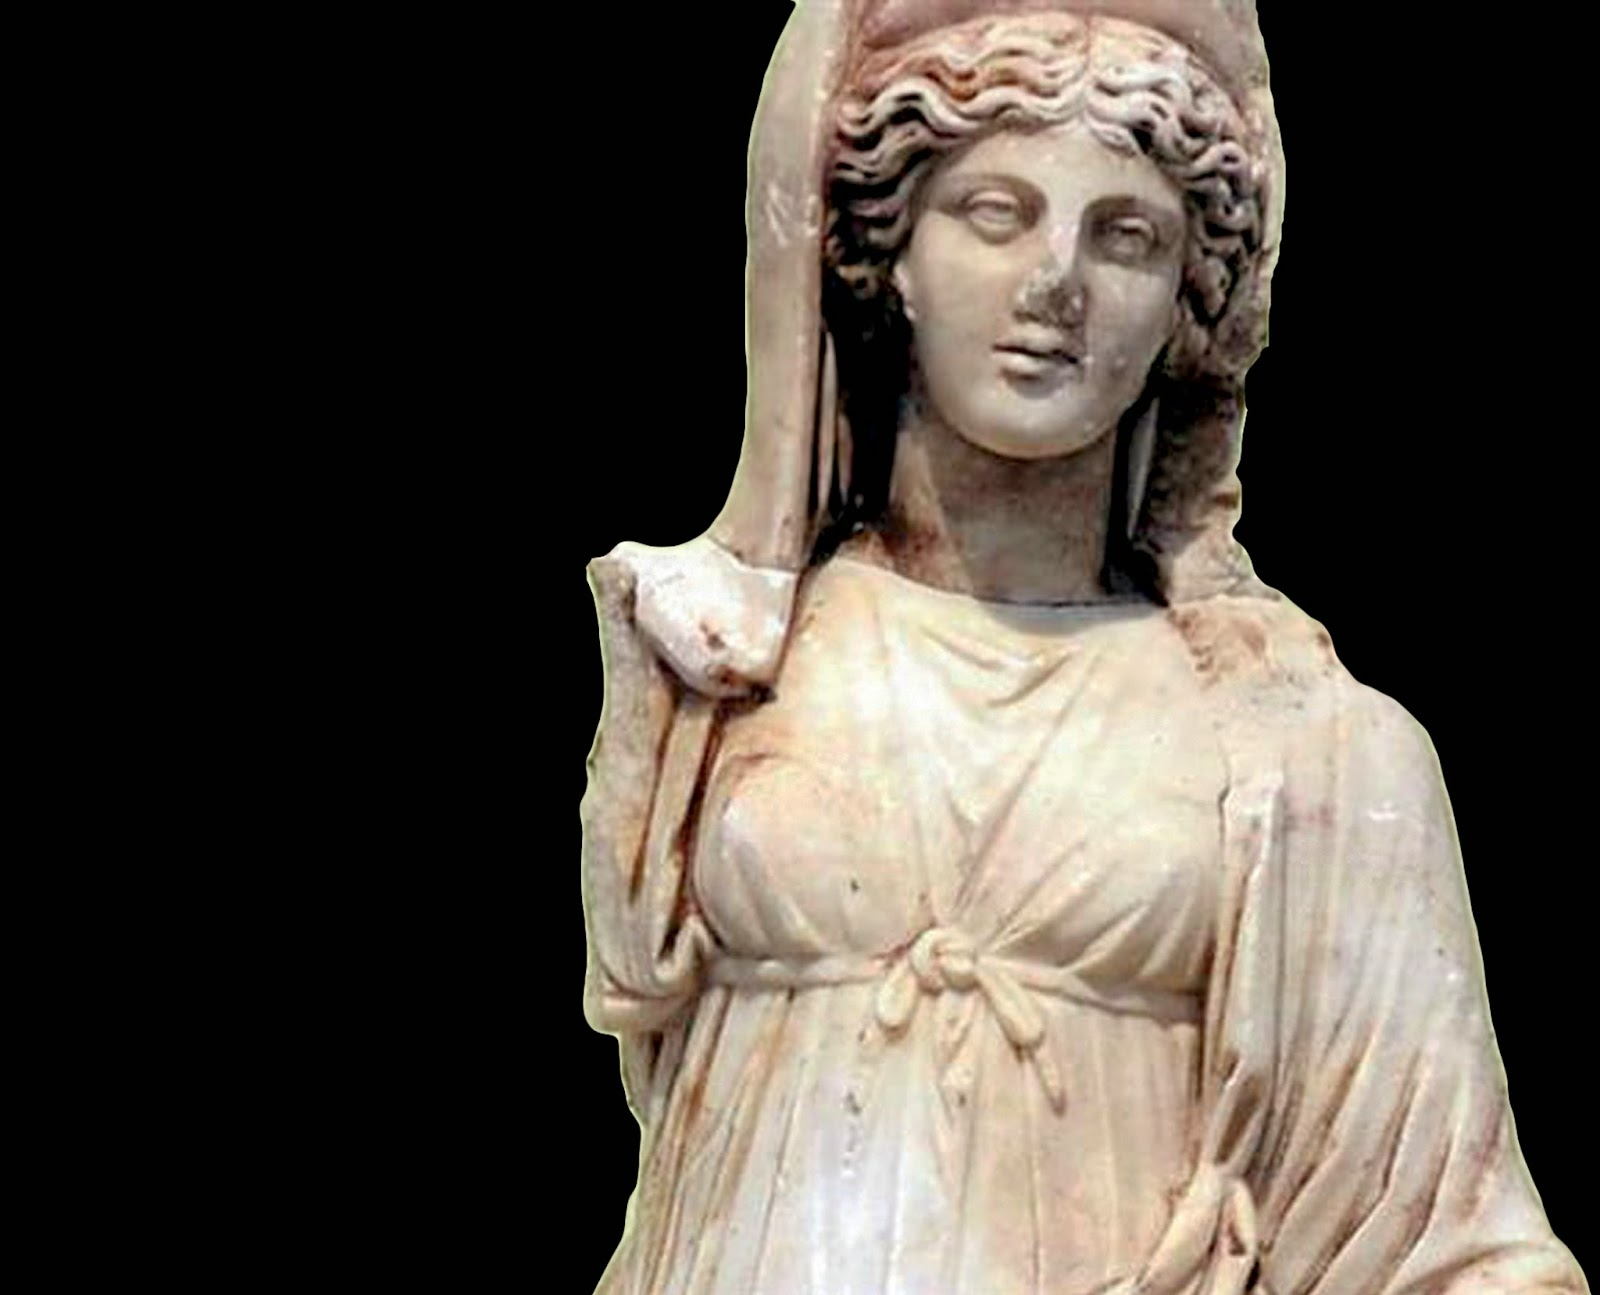 Search to find missing pieces of Greek statue started ...